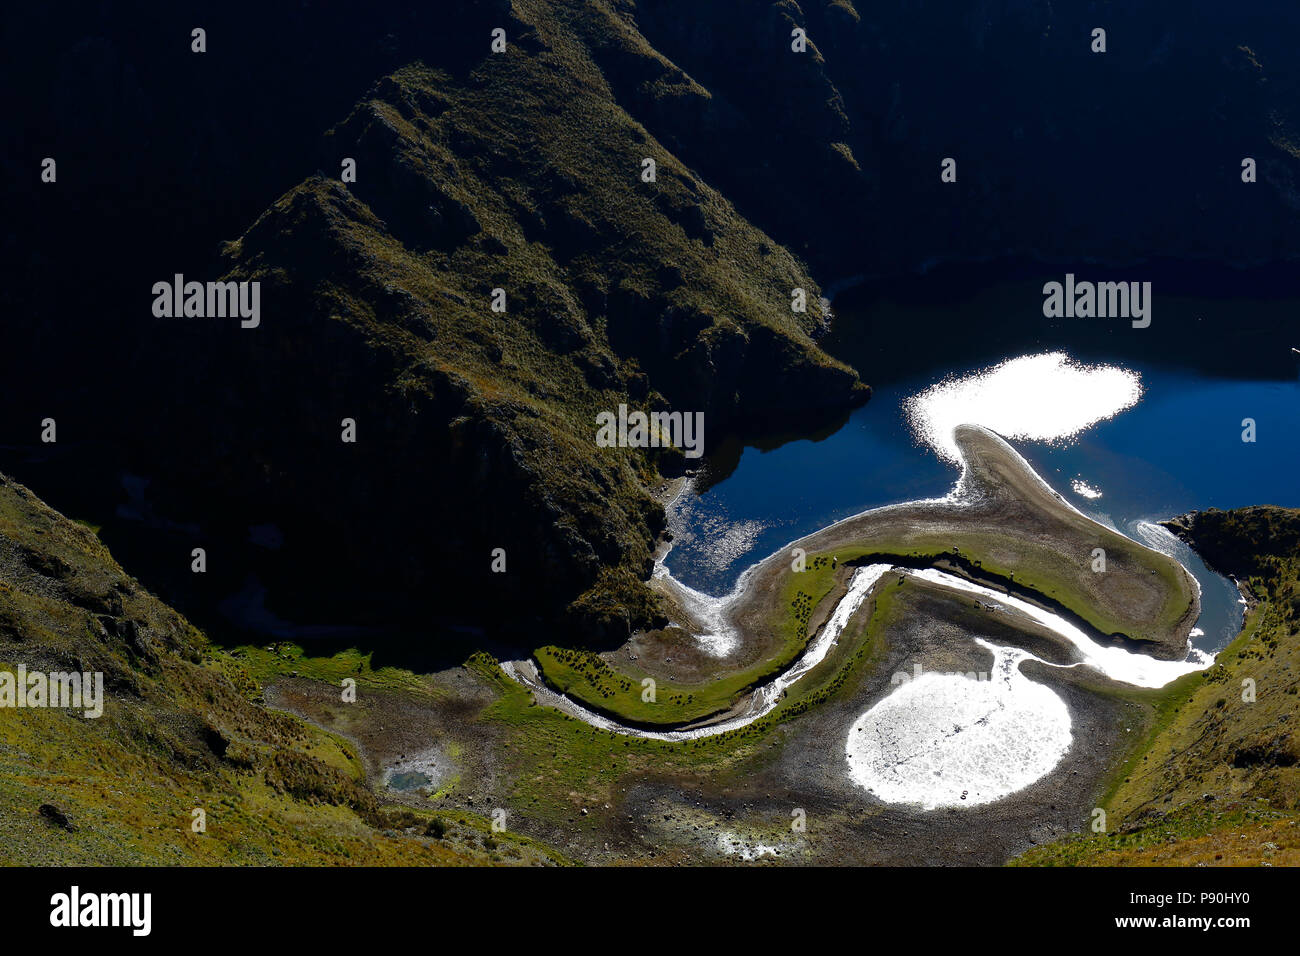 detail of high Andean lagoon located between the hills in the central mountain range of the Andes in Huancavelica. Huancavelica - Perú - Stock Image